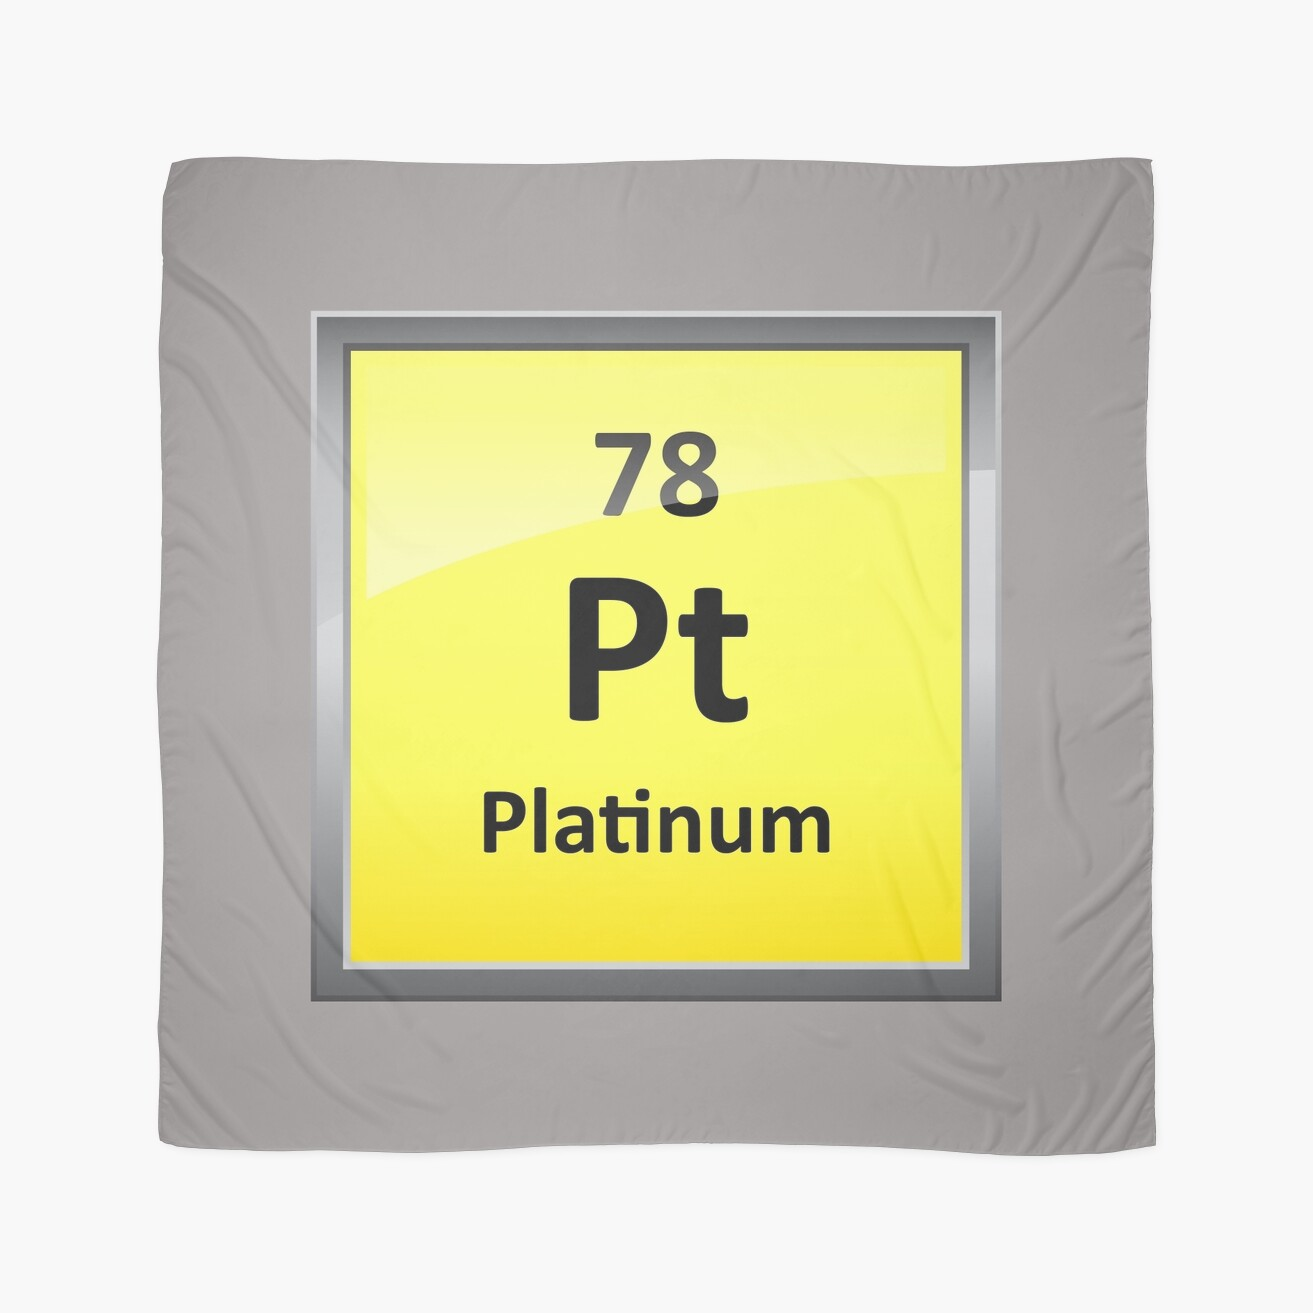 Platinum periodic table gallery periodic table images periodic table symbol for platinum choice image periodic table platinum periodic table gallery periodic table images gamestrikefo Gallery